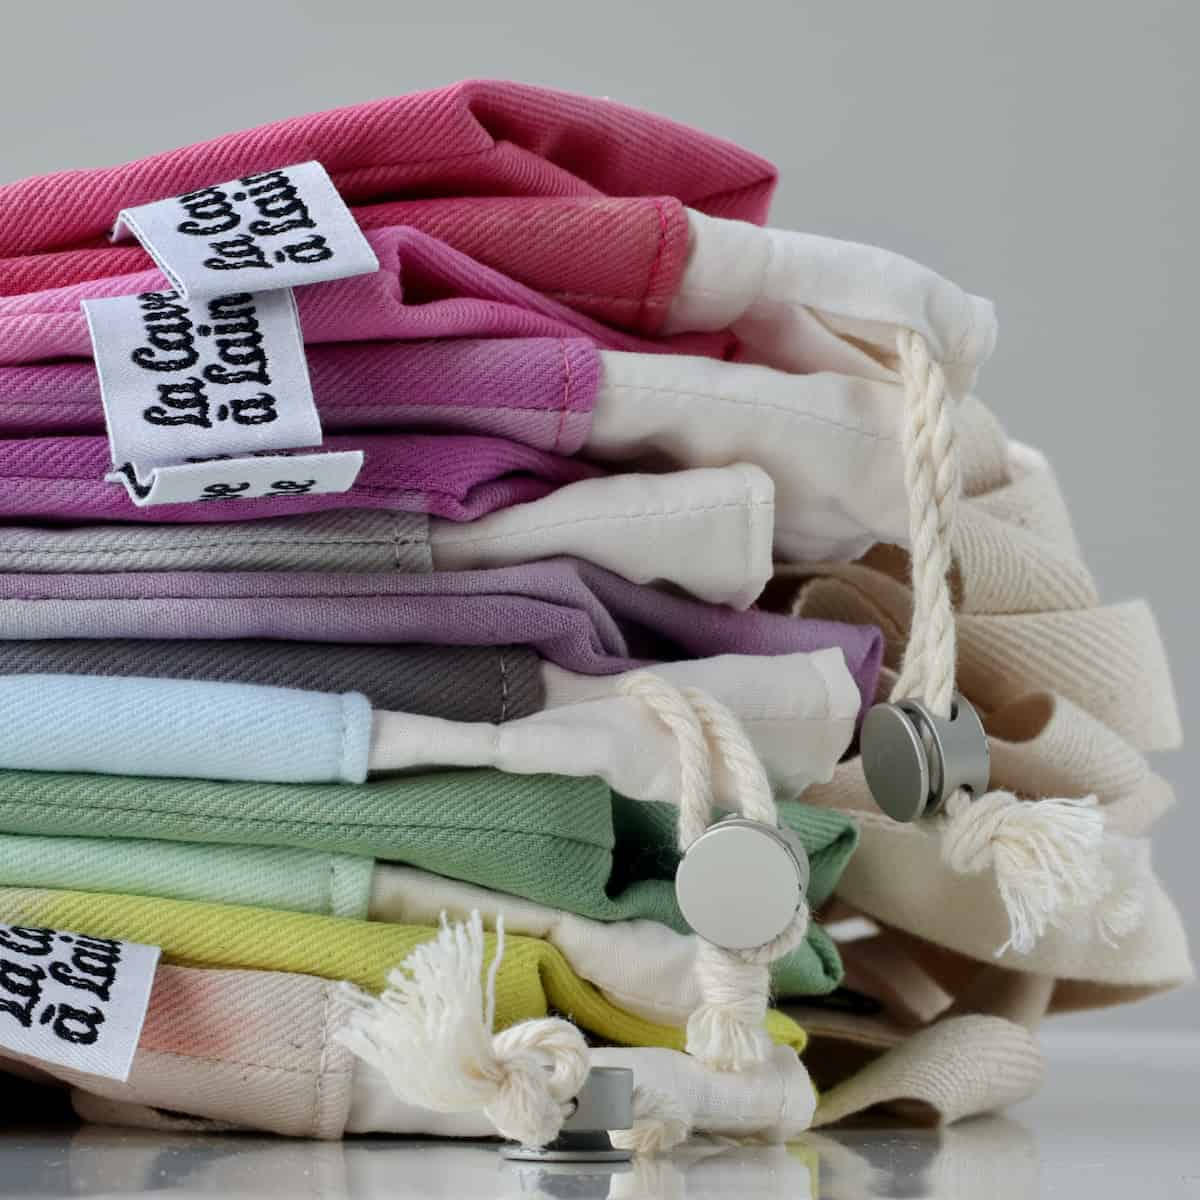 A stack of colorful bags.